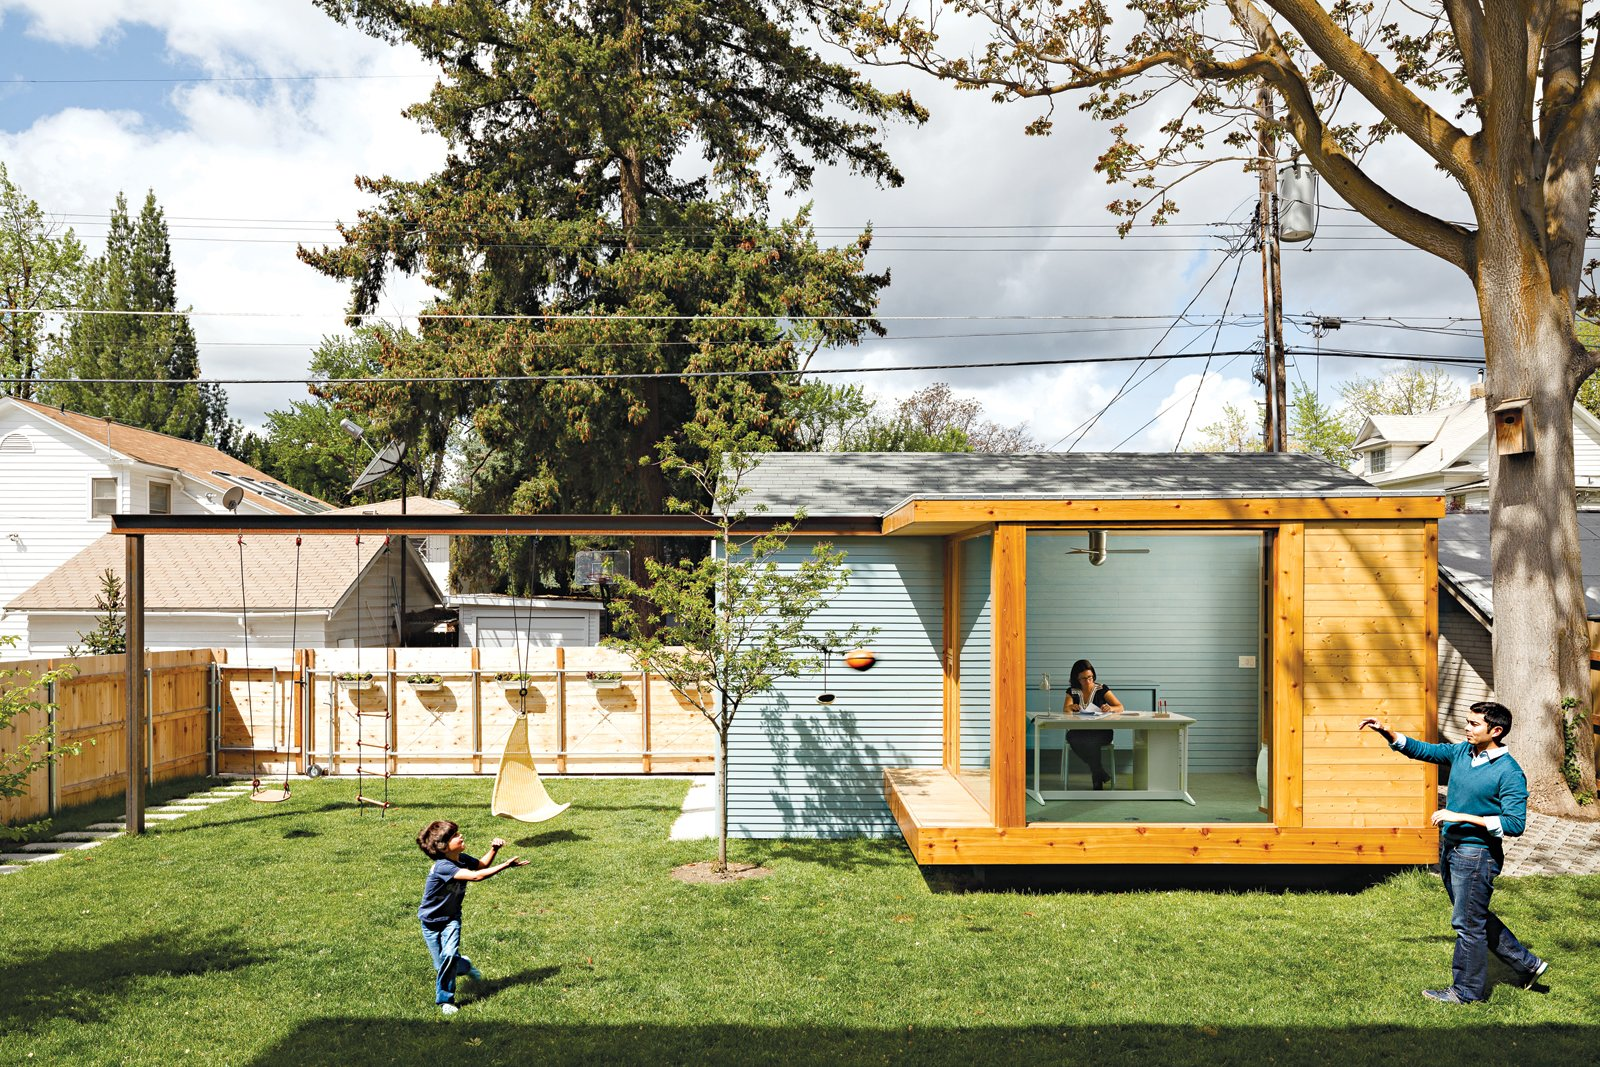 "Shed & Studio, Living Room Room Type, Family Room Room Type, and Den Room Type Work It  ""We wanted to open up the back of the house, but there's nothing to look at,"" says Dana. ""So we decided to put something in our yard as a focal point, to create our own view."" The architects came up with a glass-walled studio, which Dana uses as   her home office. The architects mounted a steel I-beam that spans the yard, with holes drilled at eight-inch intervals for maximum flexibility of use. Right now it's used for Ikea play equipment, but later they plan to hang a hammock and a movie screen.  ikea.com  Best Photos from An Airy Addition to a Historic Boise Home"